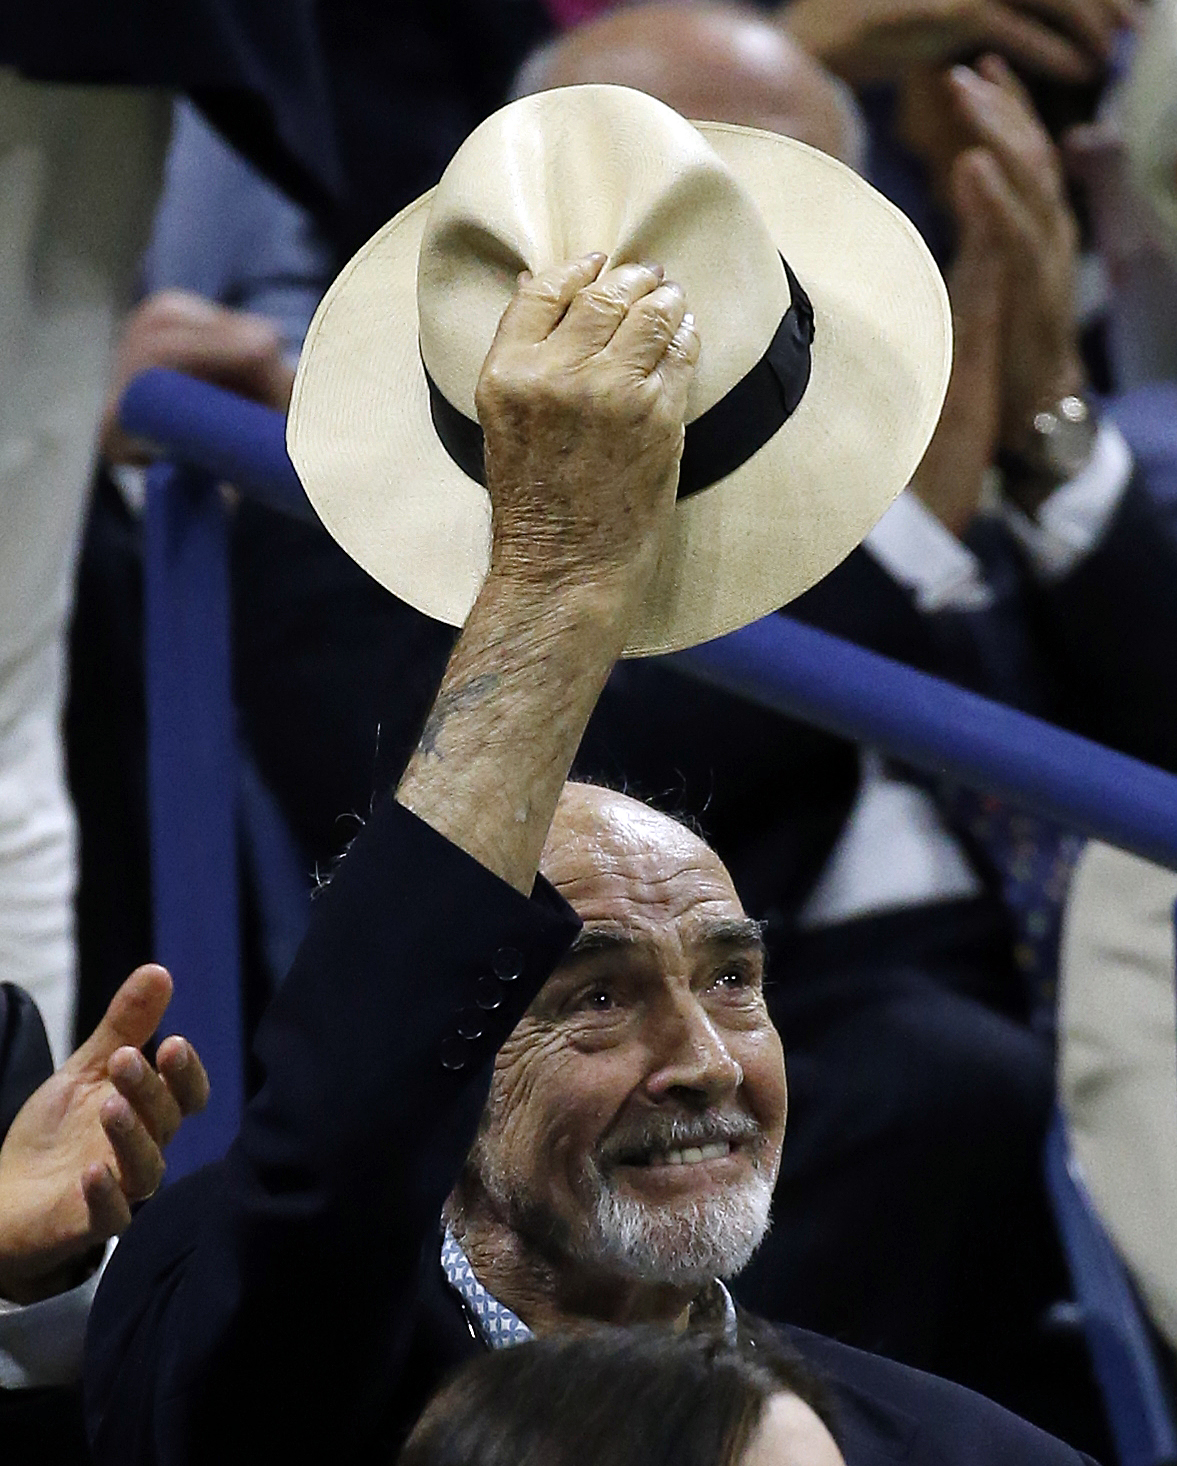 Sean Connery acknowledges the crowd during the men's championship match between Roger Federer and Novak Djokovic at the U.S. Open tennis tournament, Sunday, Sept. 13, 2015, in New York. (AP Photo/Julio Cortez)